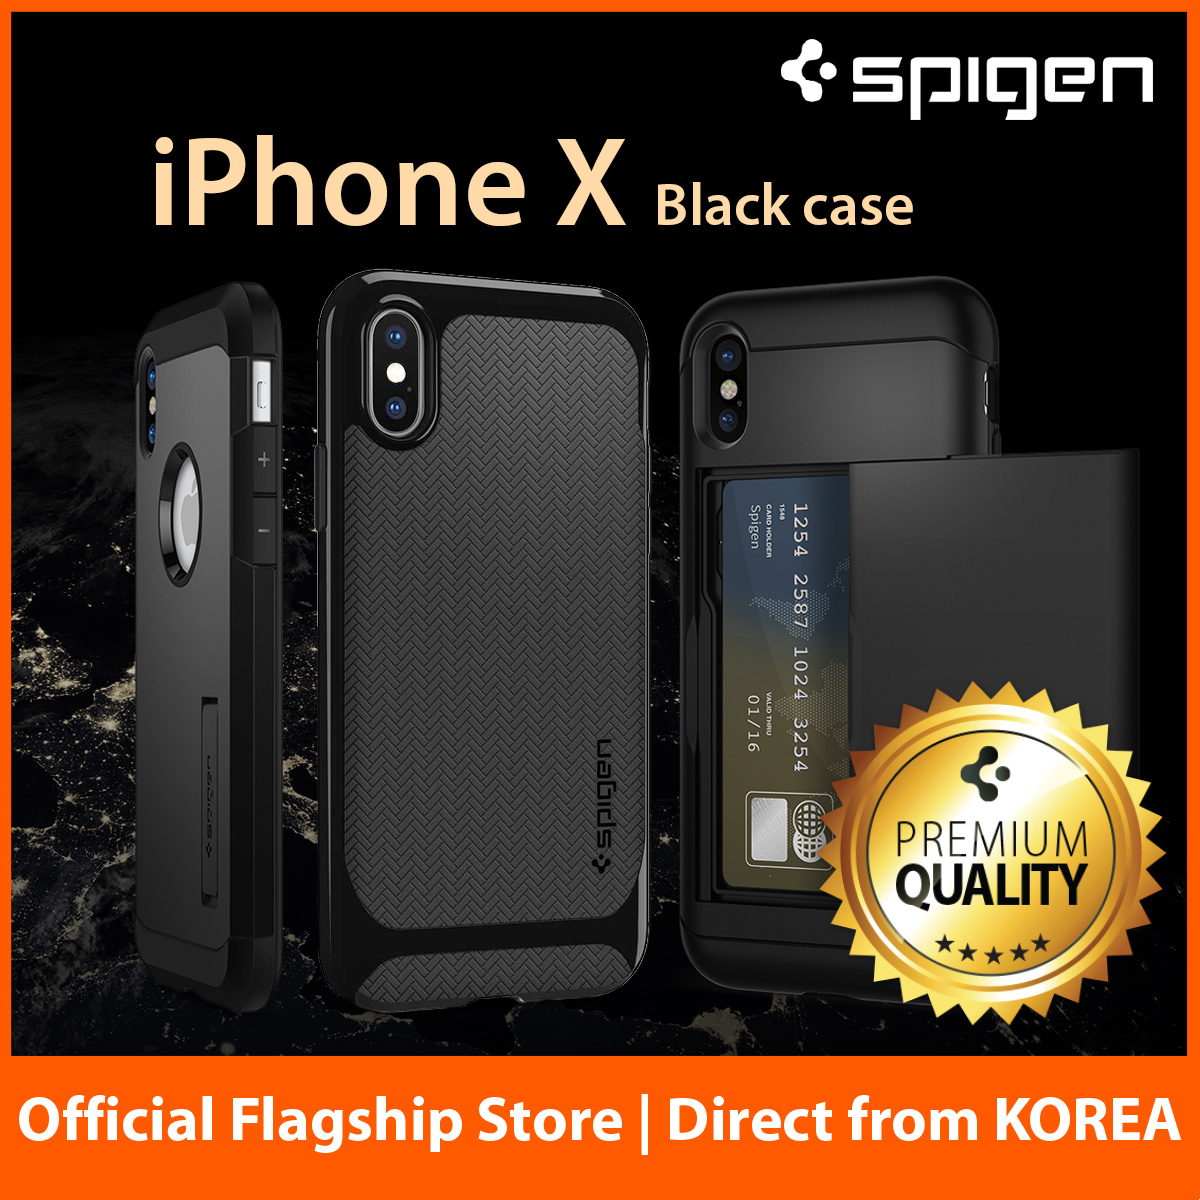 Spigen Official Store Premium Mobile Phone Accessories Case Iphone Xr Clear Anti Shock Ultra Hybrid Original Casing Matte Black Made In Korea Local Seller Fast Delivery